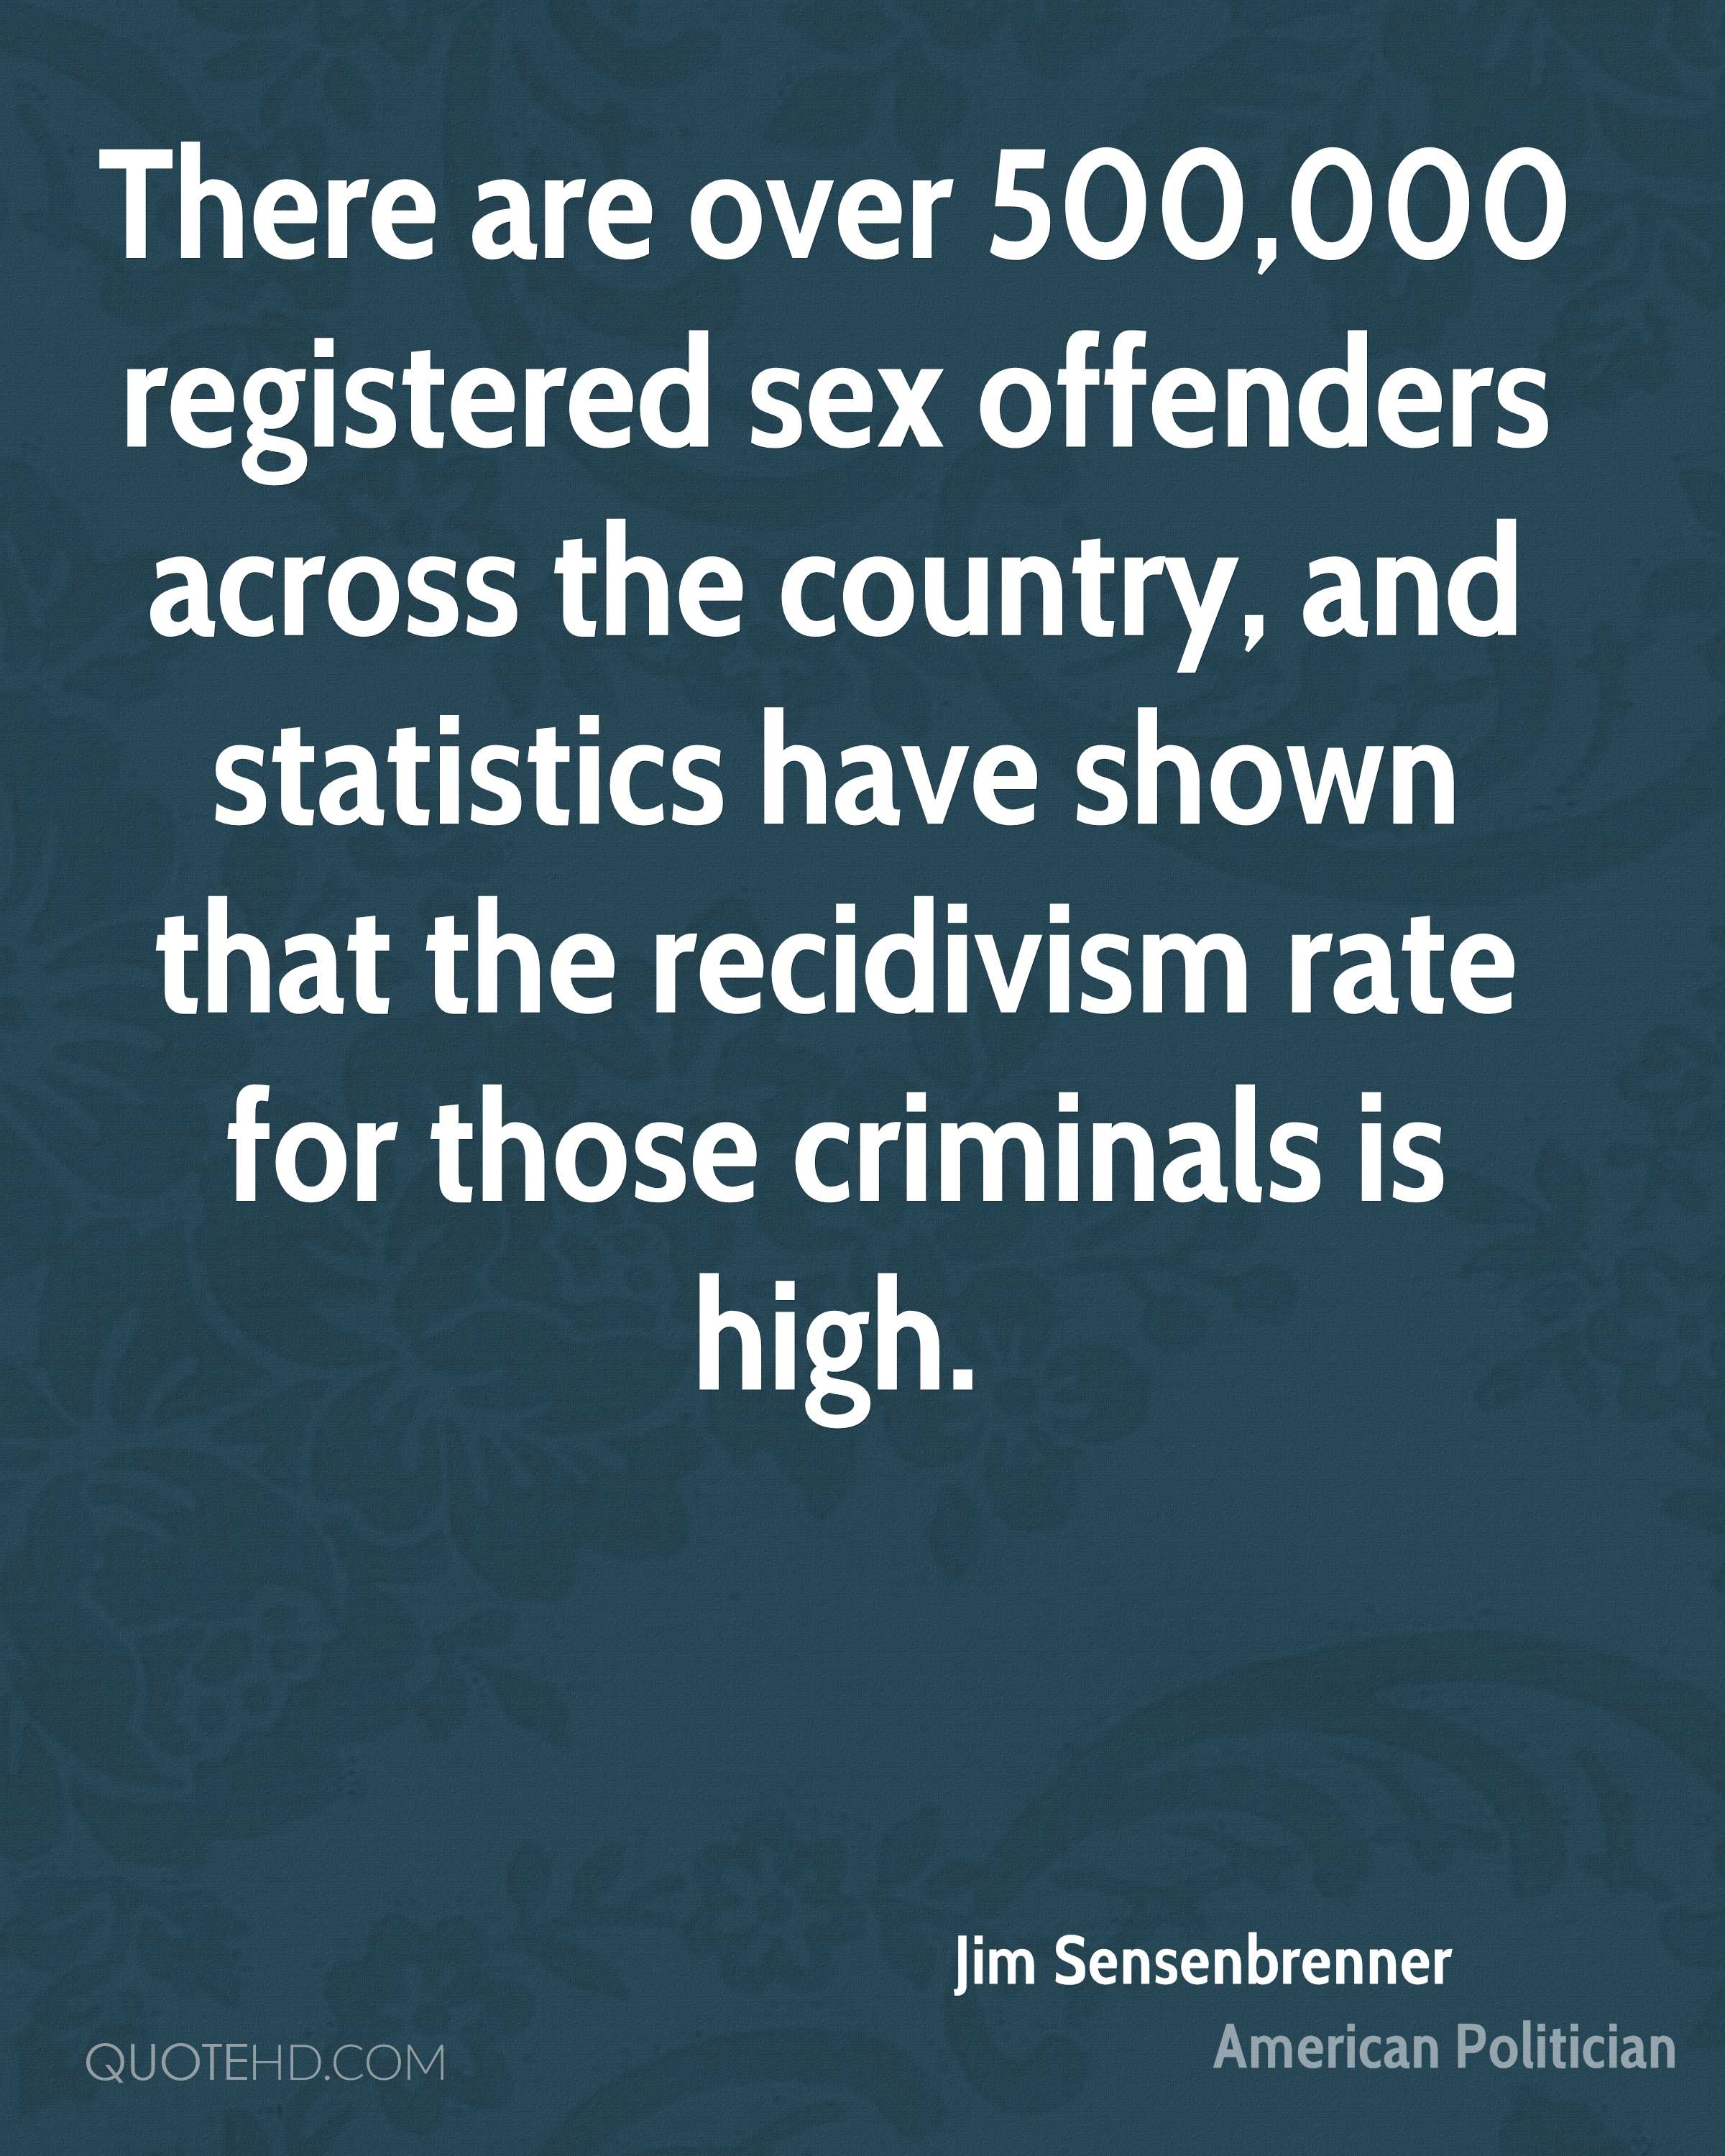 There are over 500,000 registered sex offenders across the country, and statistics have shown that the recidivism rate for those criminals is high.